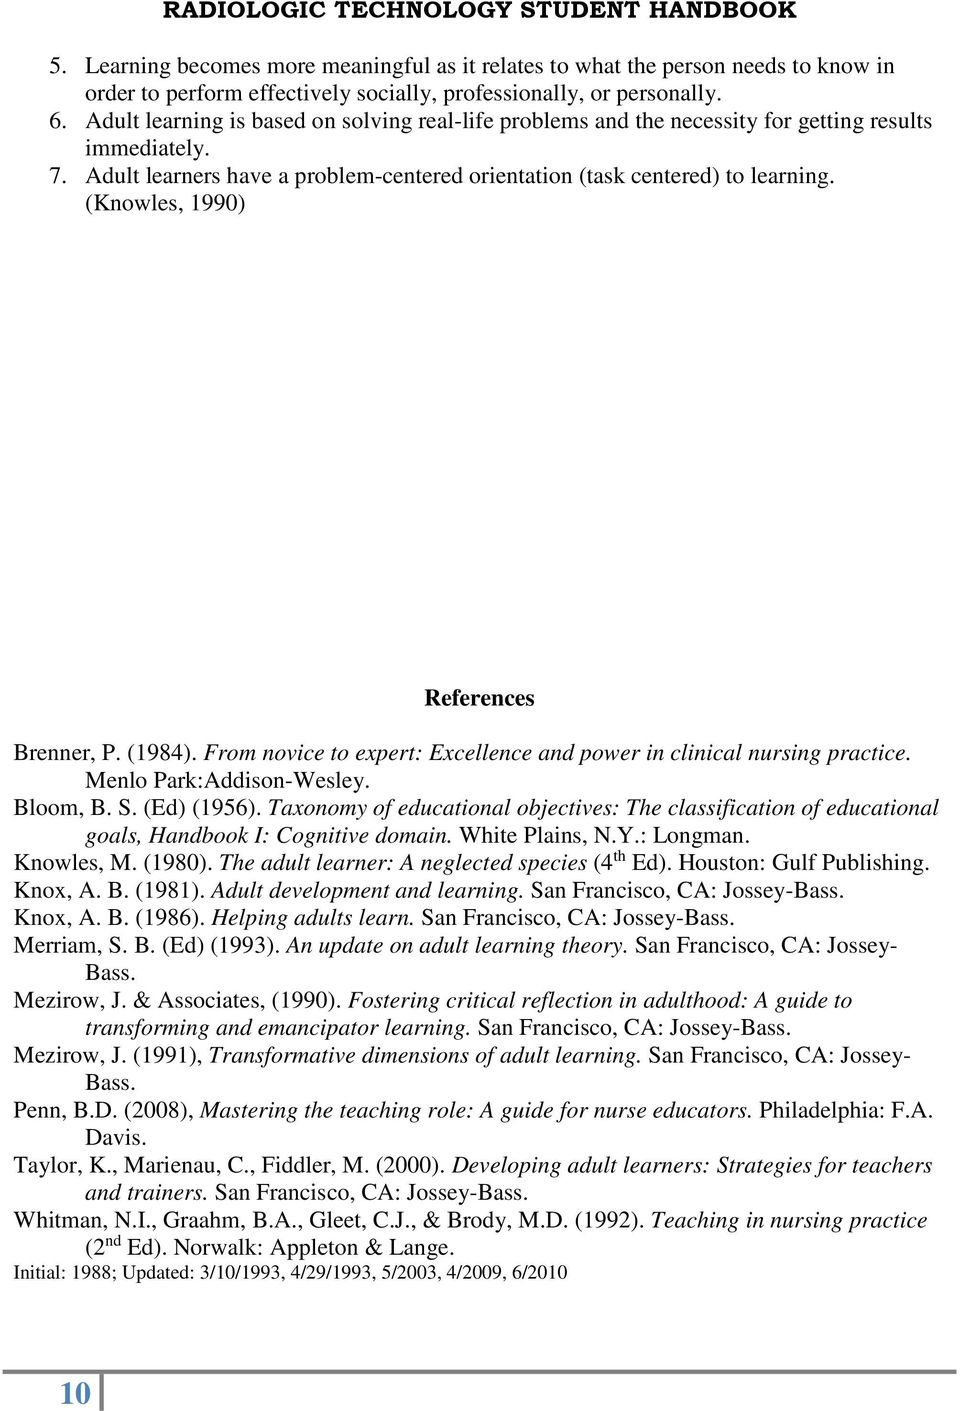 (Knowles, 1990) References Brenner, P. (1984). From novice to expert: Excellence and power in clinical nursing practice. Menlo Park:Addison-Wesley. Bloom, B. S. (Ed) (1956).